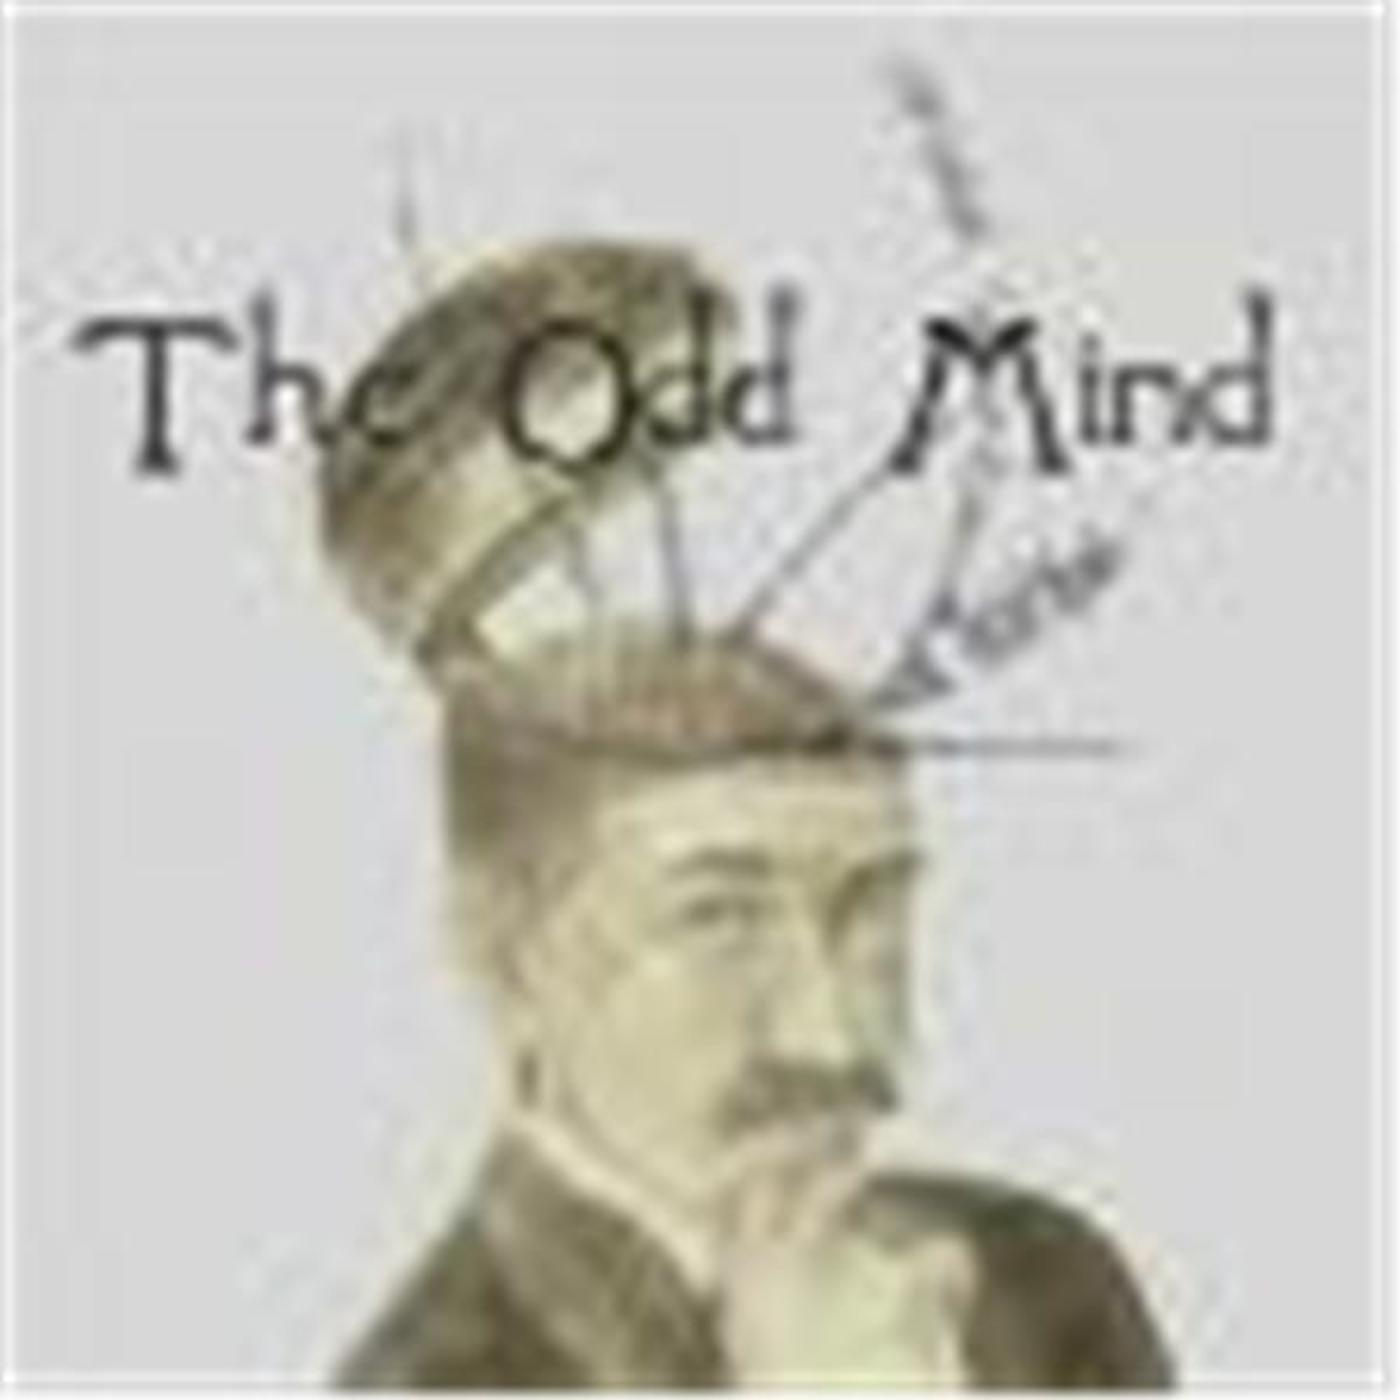 The Odd Mind Show with Lesa Trapp